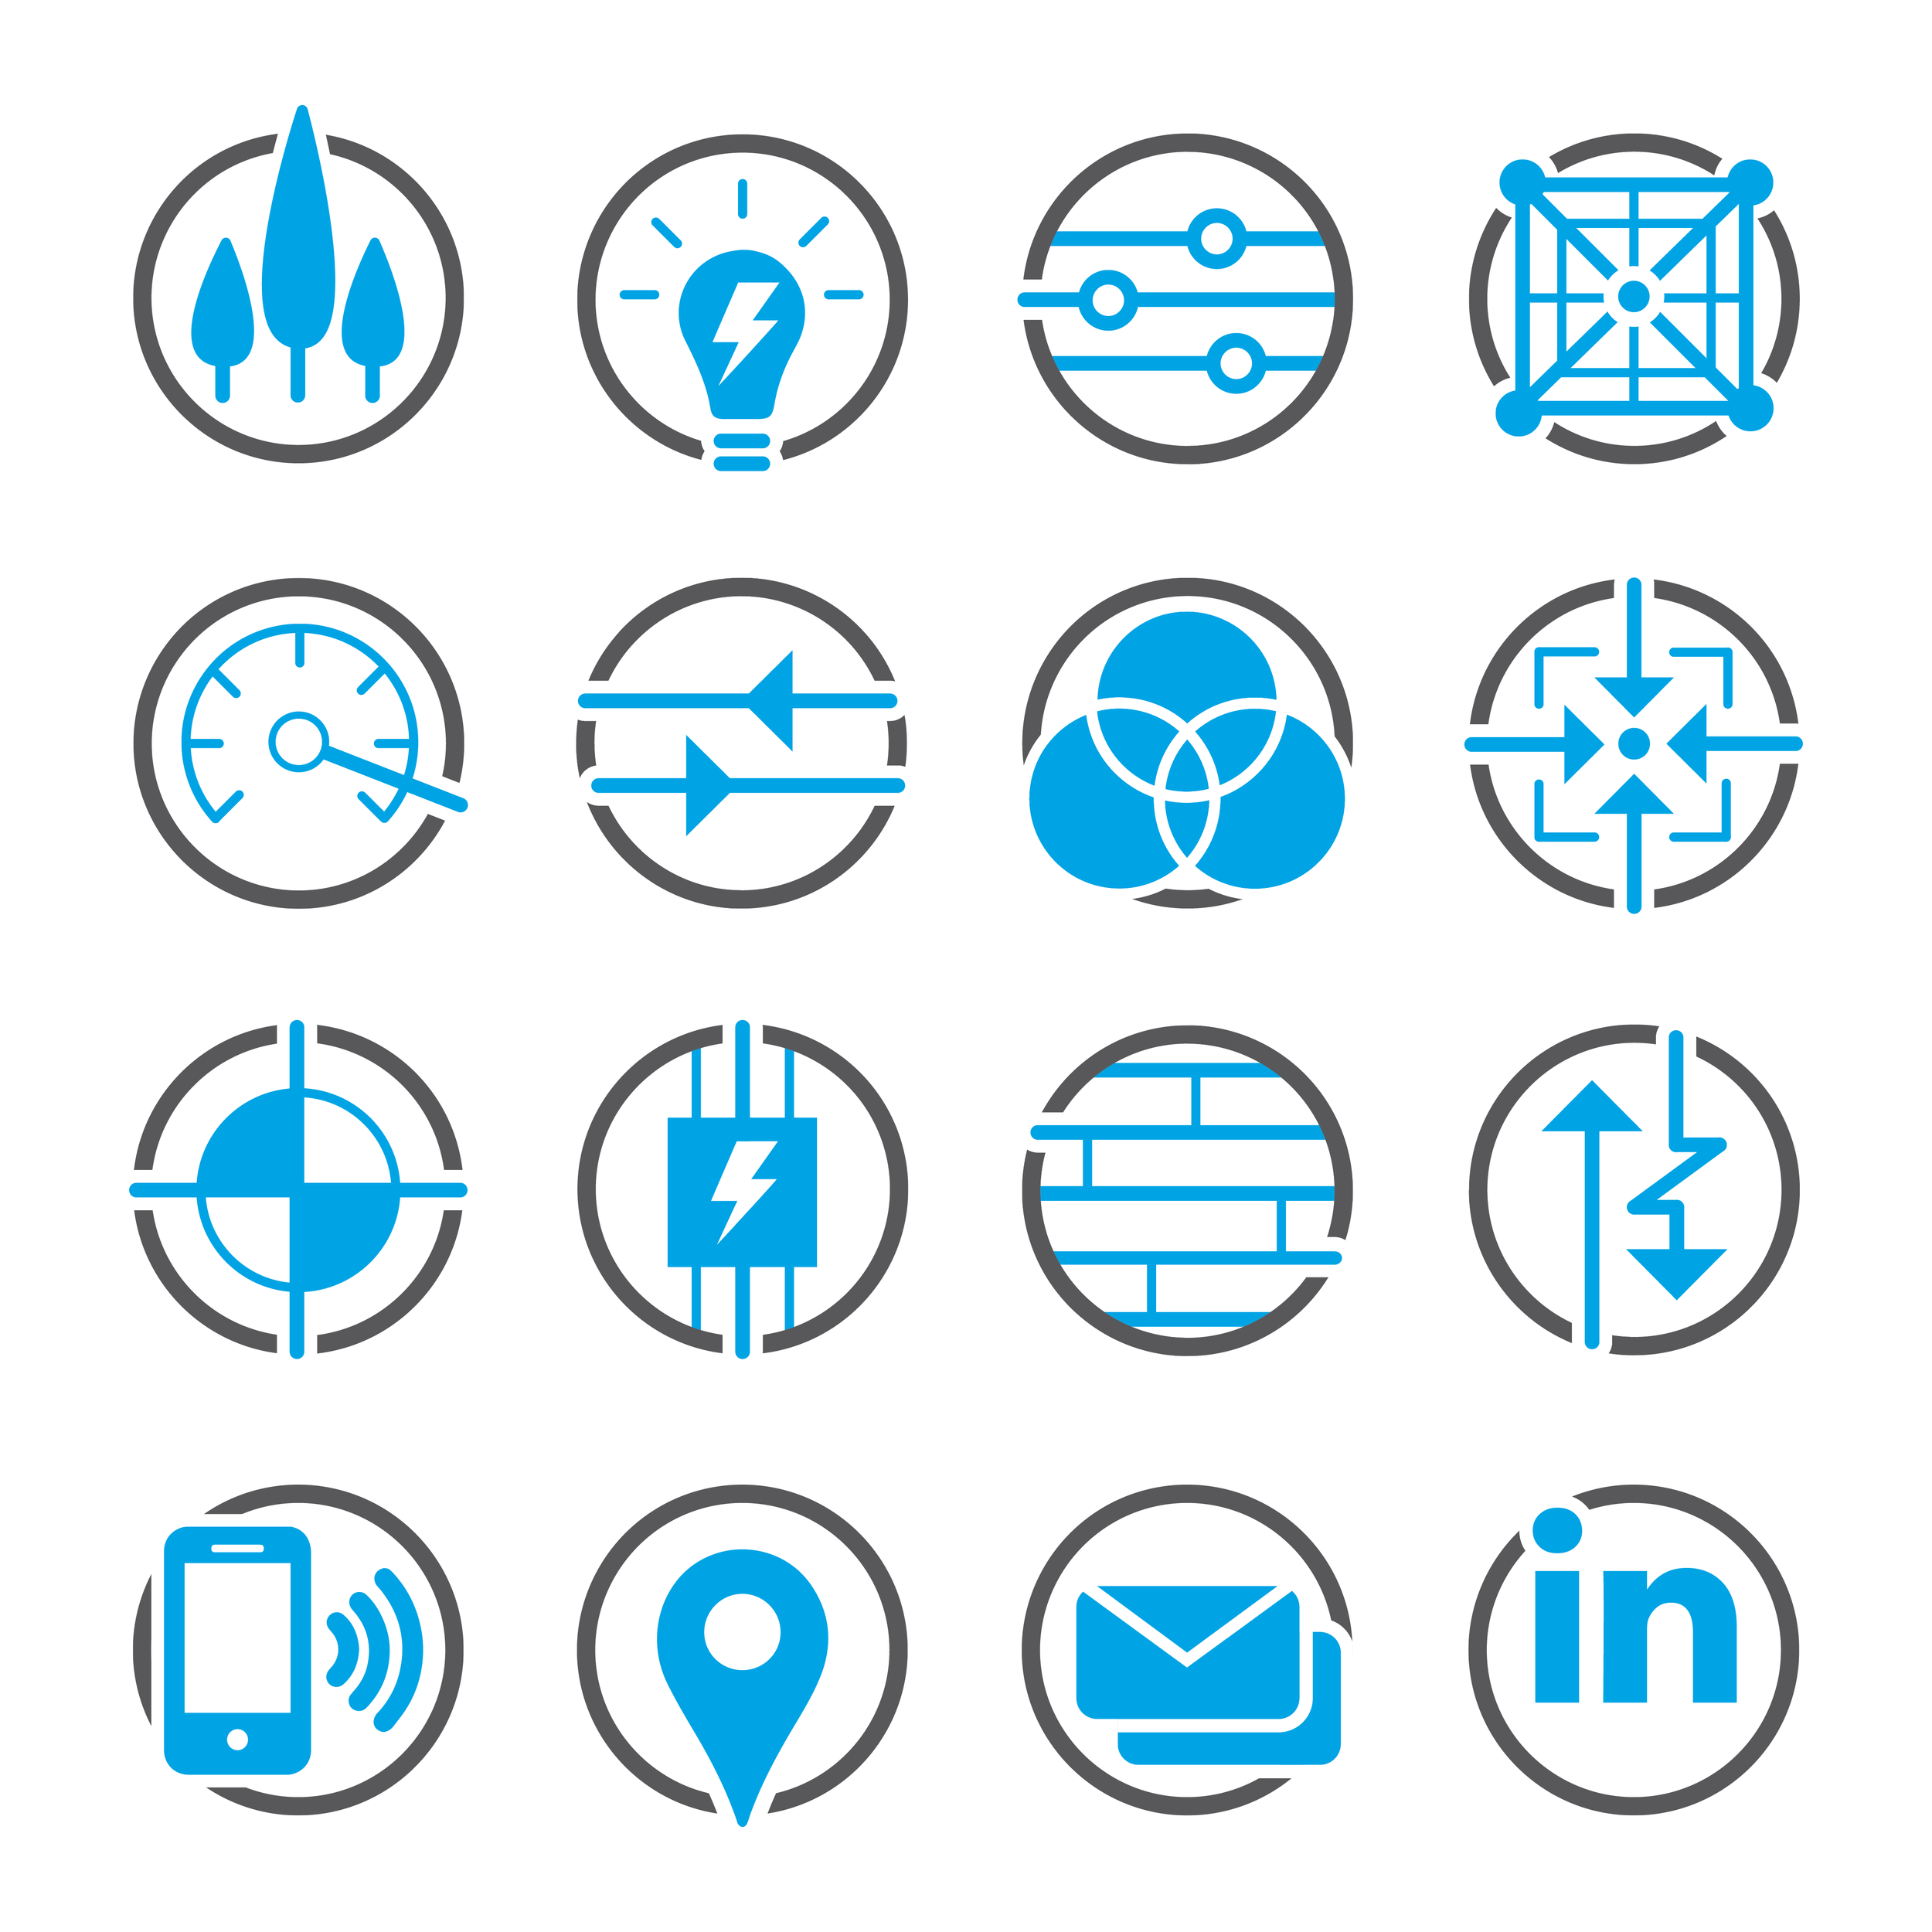 Camino icons-01.png